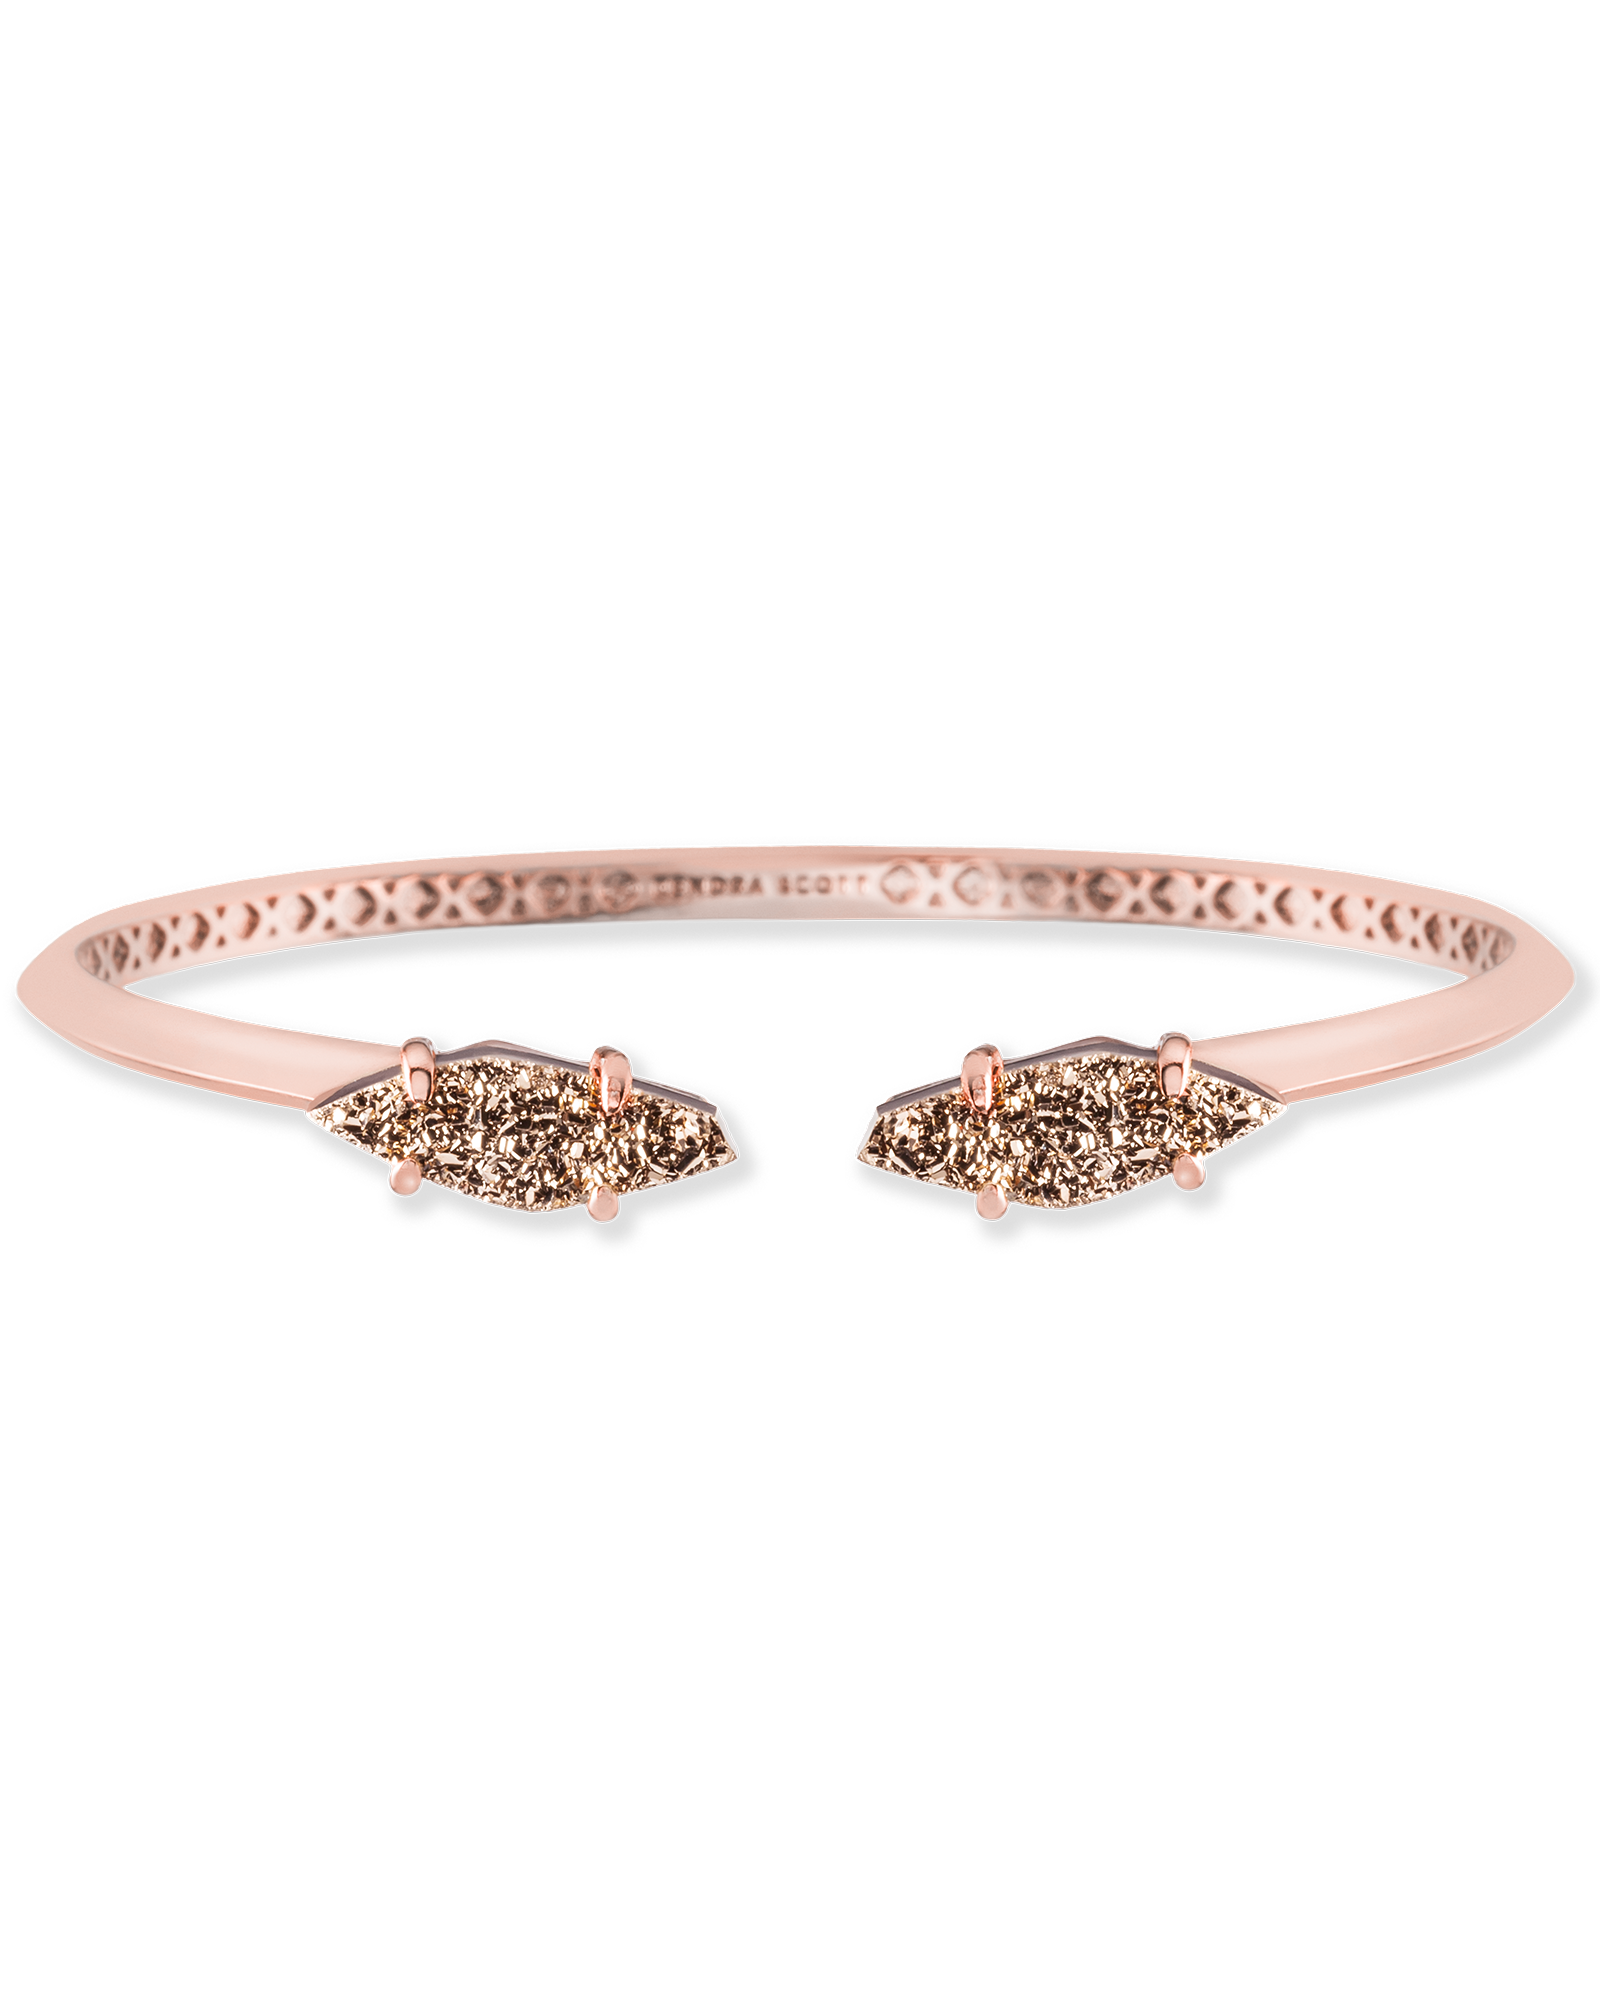 Rose Gold Cuff Bracelets In Pink Drusy Stones From Kendra Scott Perfect For Stacking